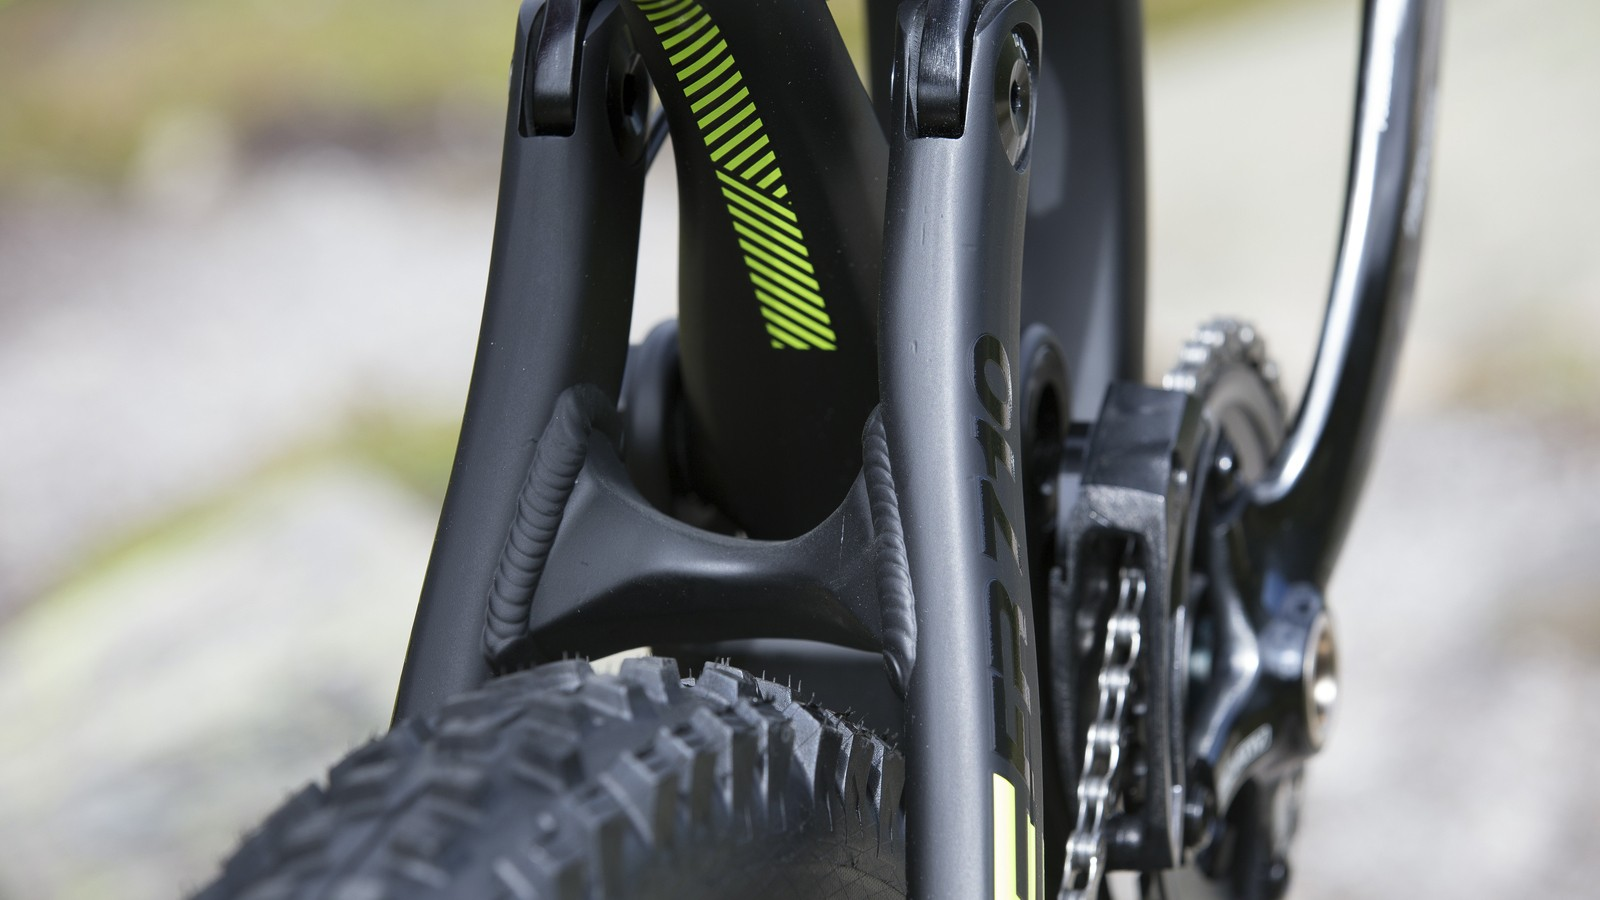 The 2015 design has built in yoke in the seatstay to increase the frame's stiffness and strength